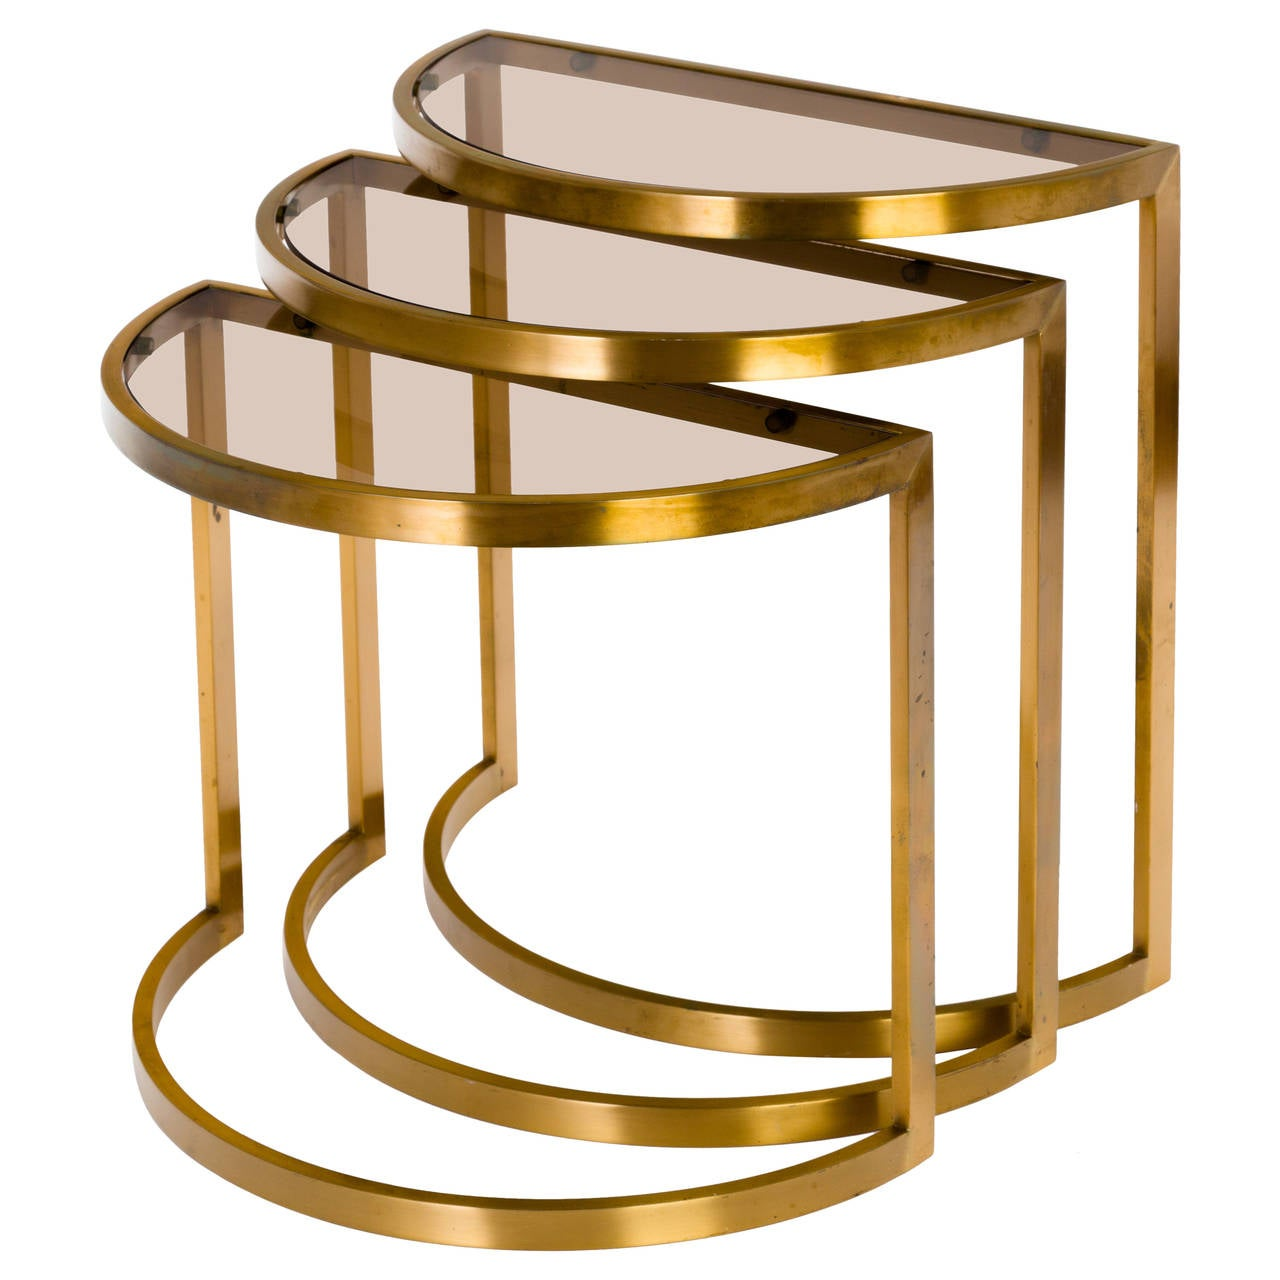 Set of three s modern nesting tables in brass and